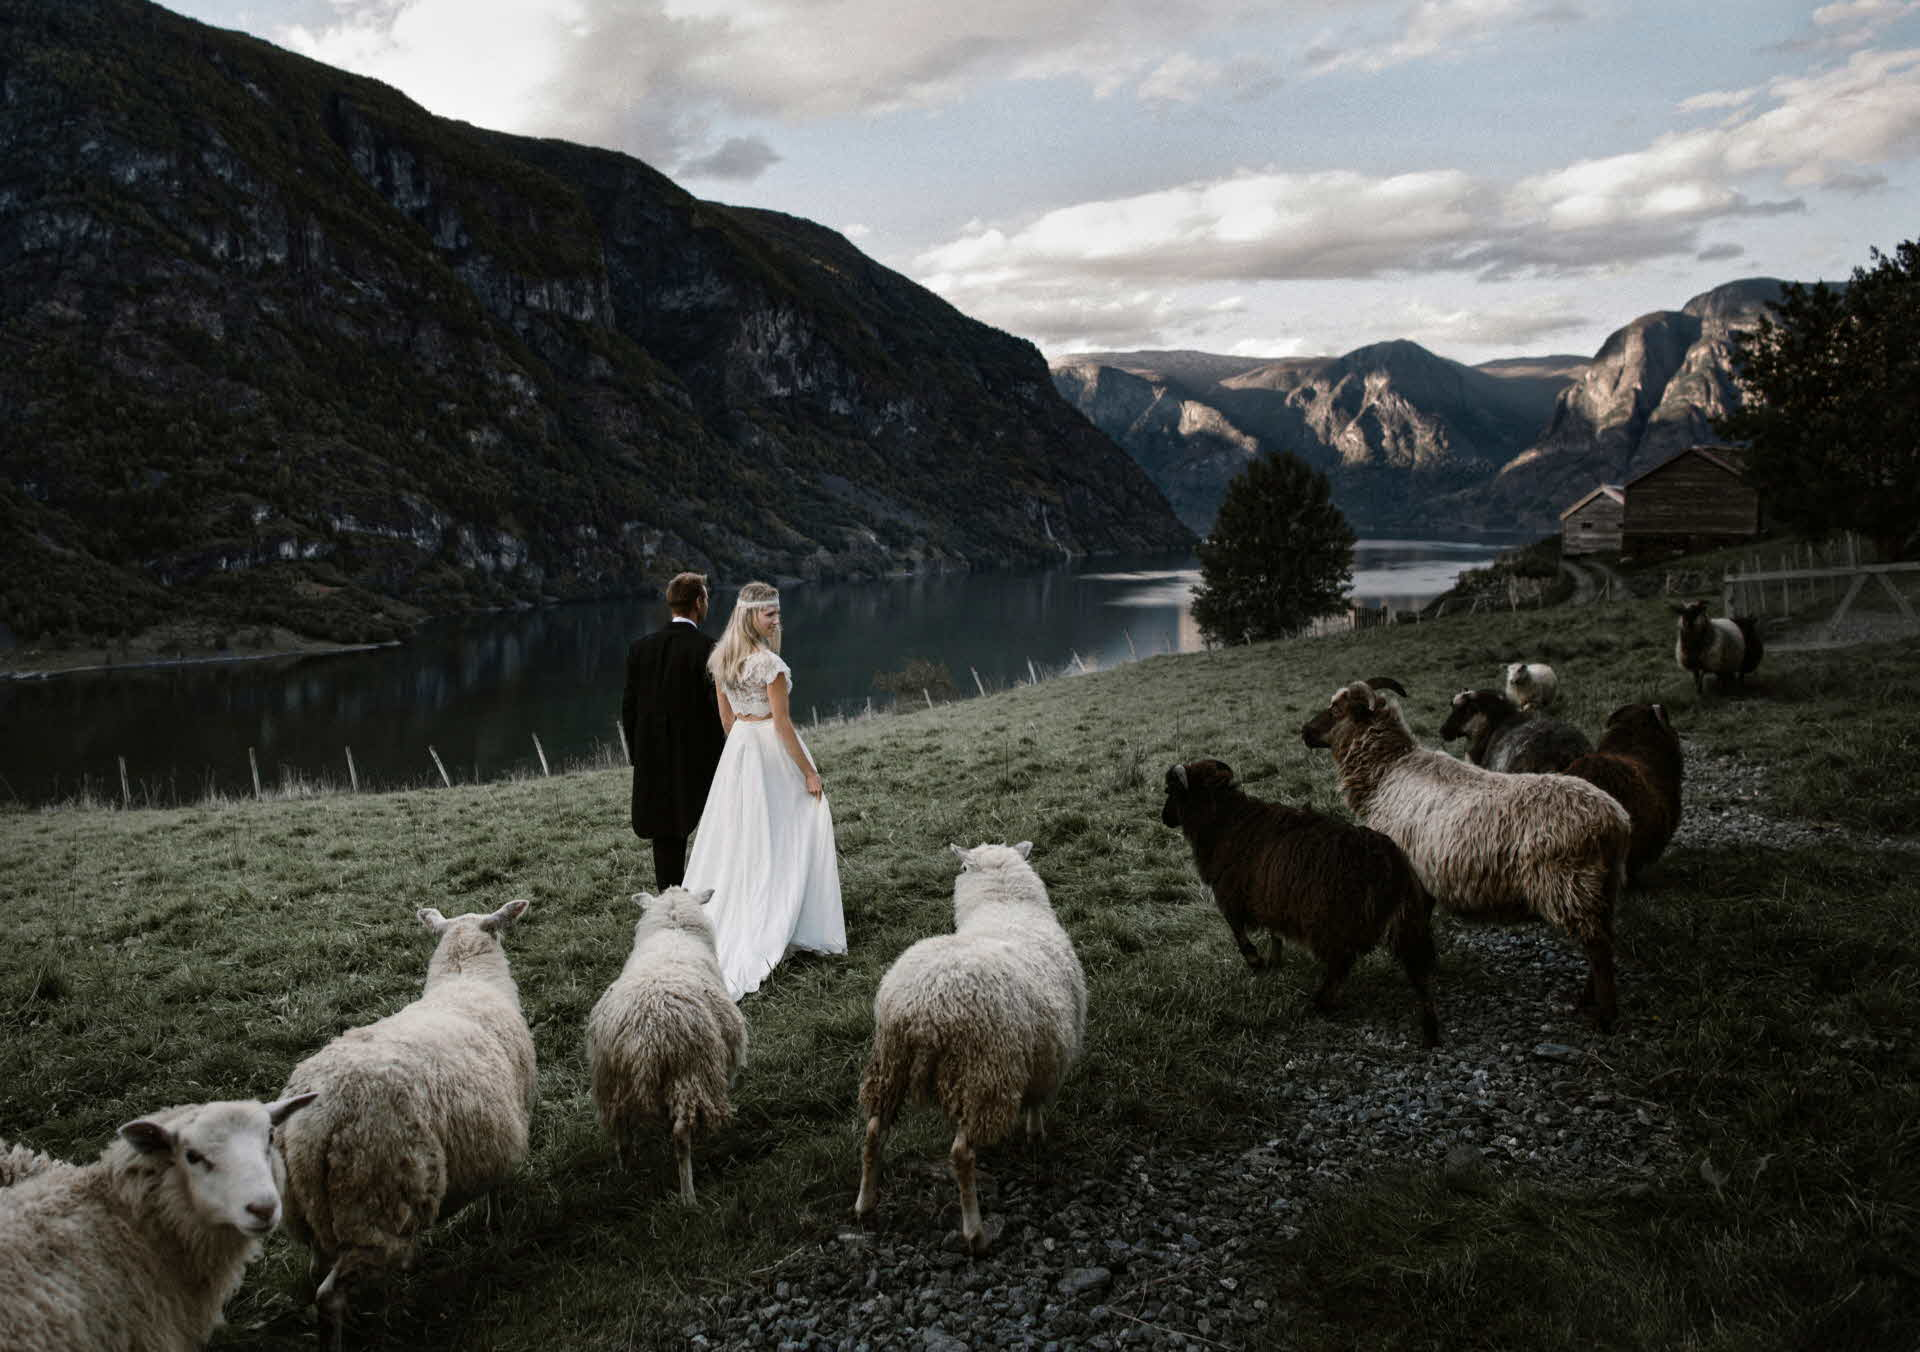 A groom and a bride in white, long dress walking on a field surrounded by sheep. The Aurlandsfjord in the background.